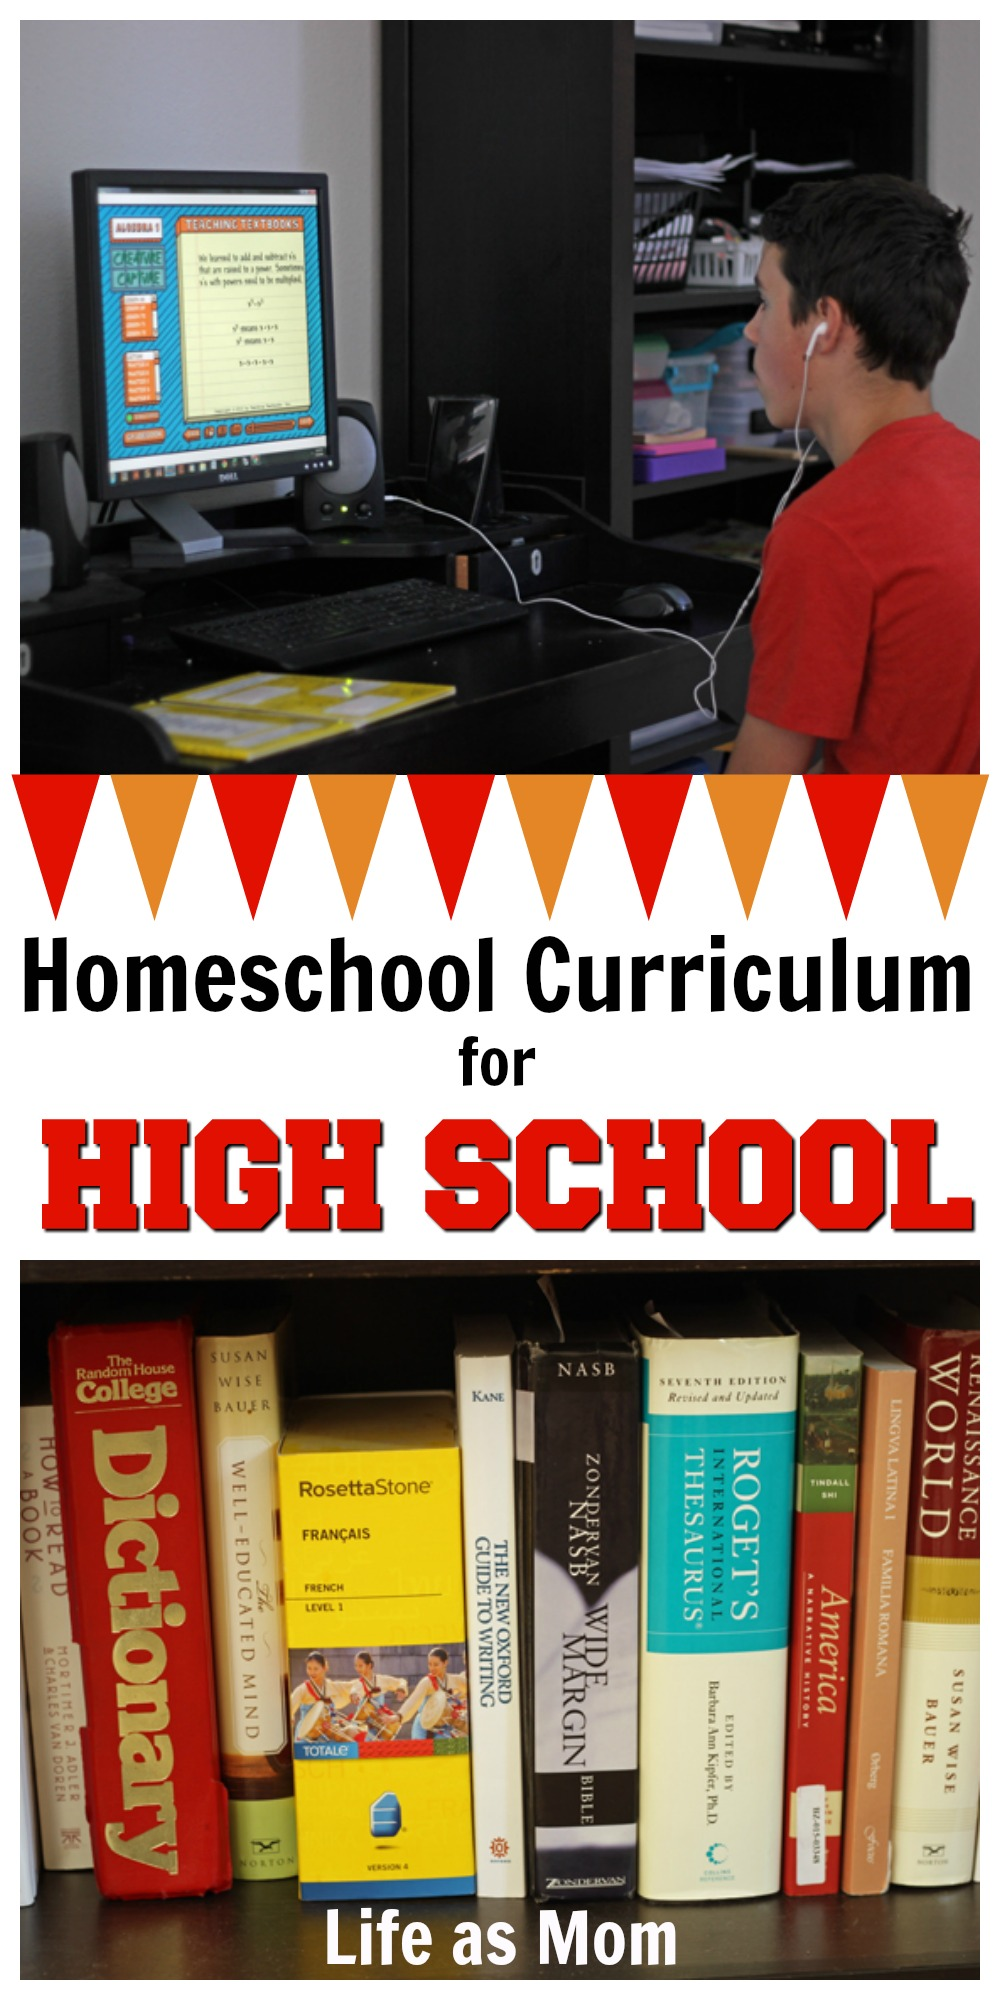 Homeschool Curriculum for High School | 9th and 12th grade